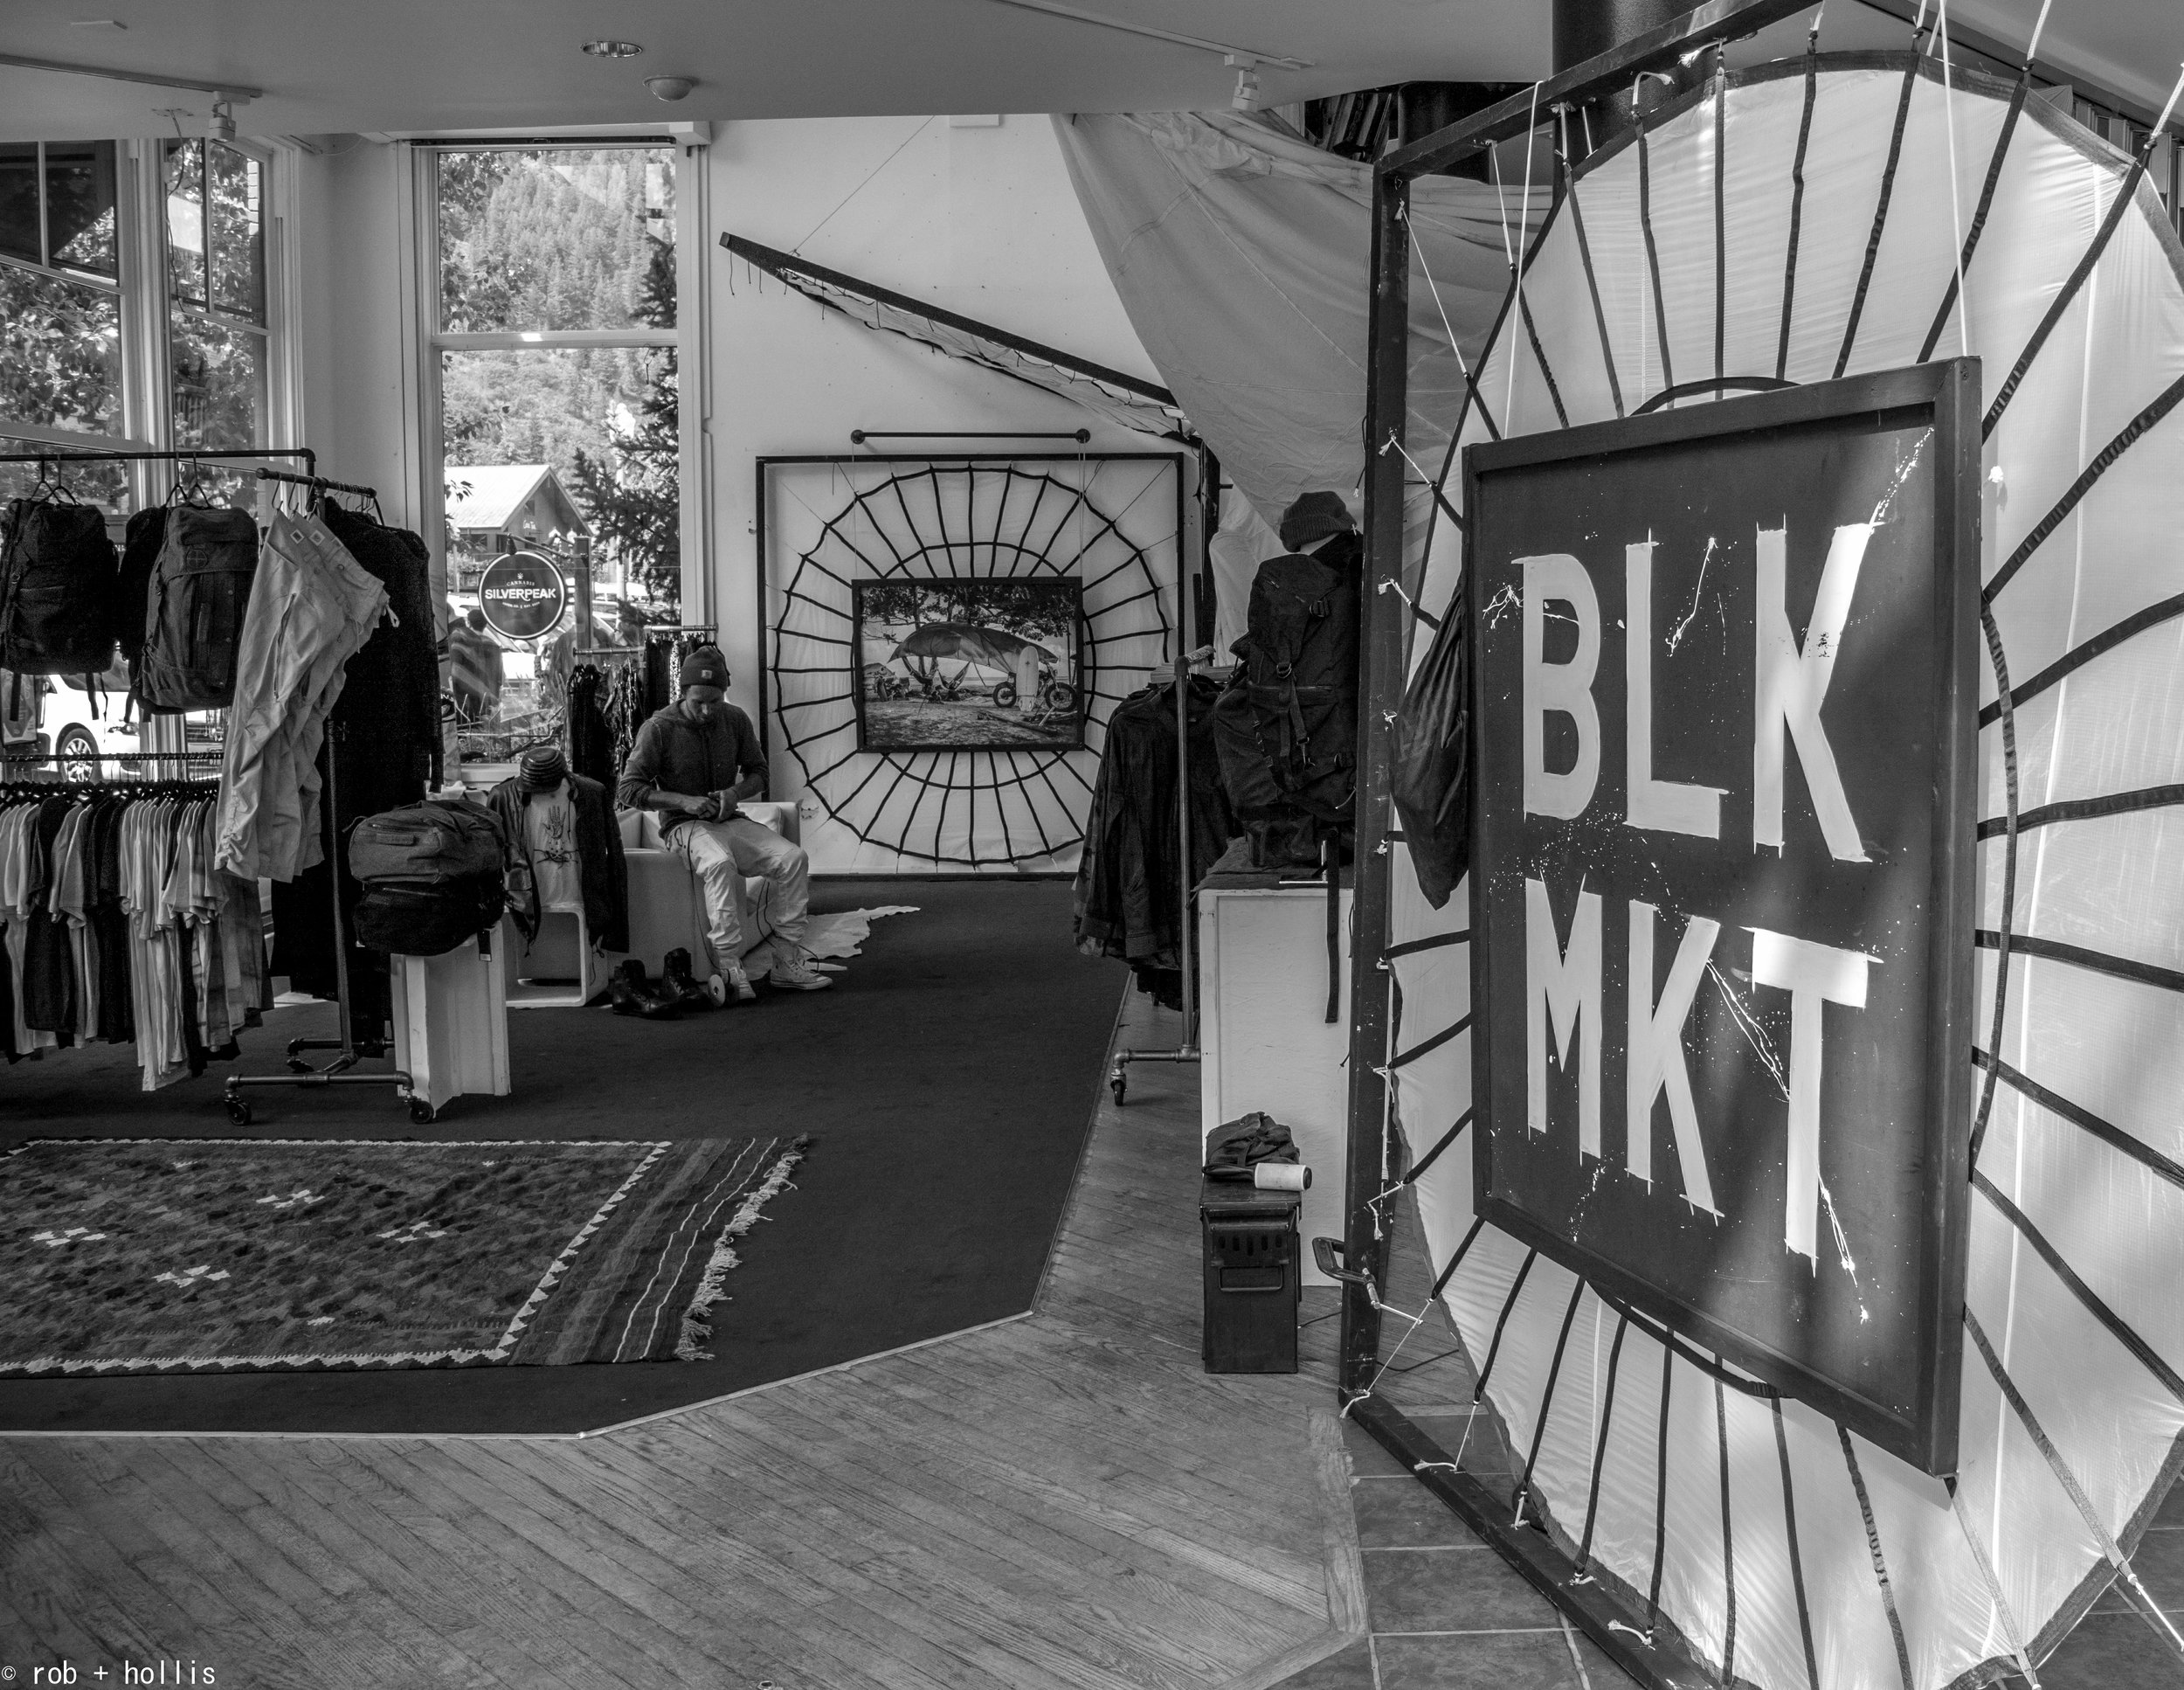 The BLK MKT Team has set up in Boogie's Aspen for Labor Day weekend